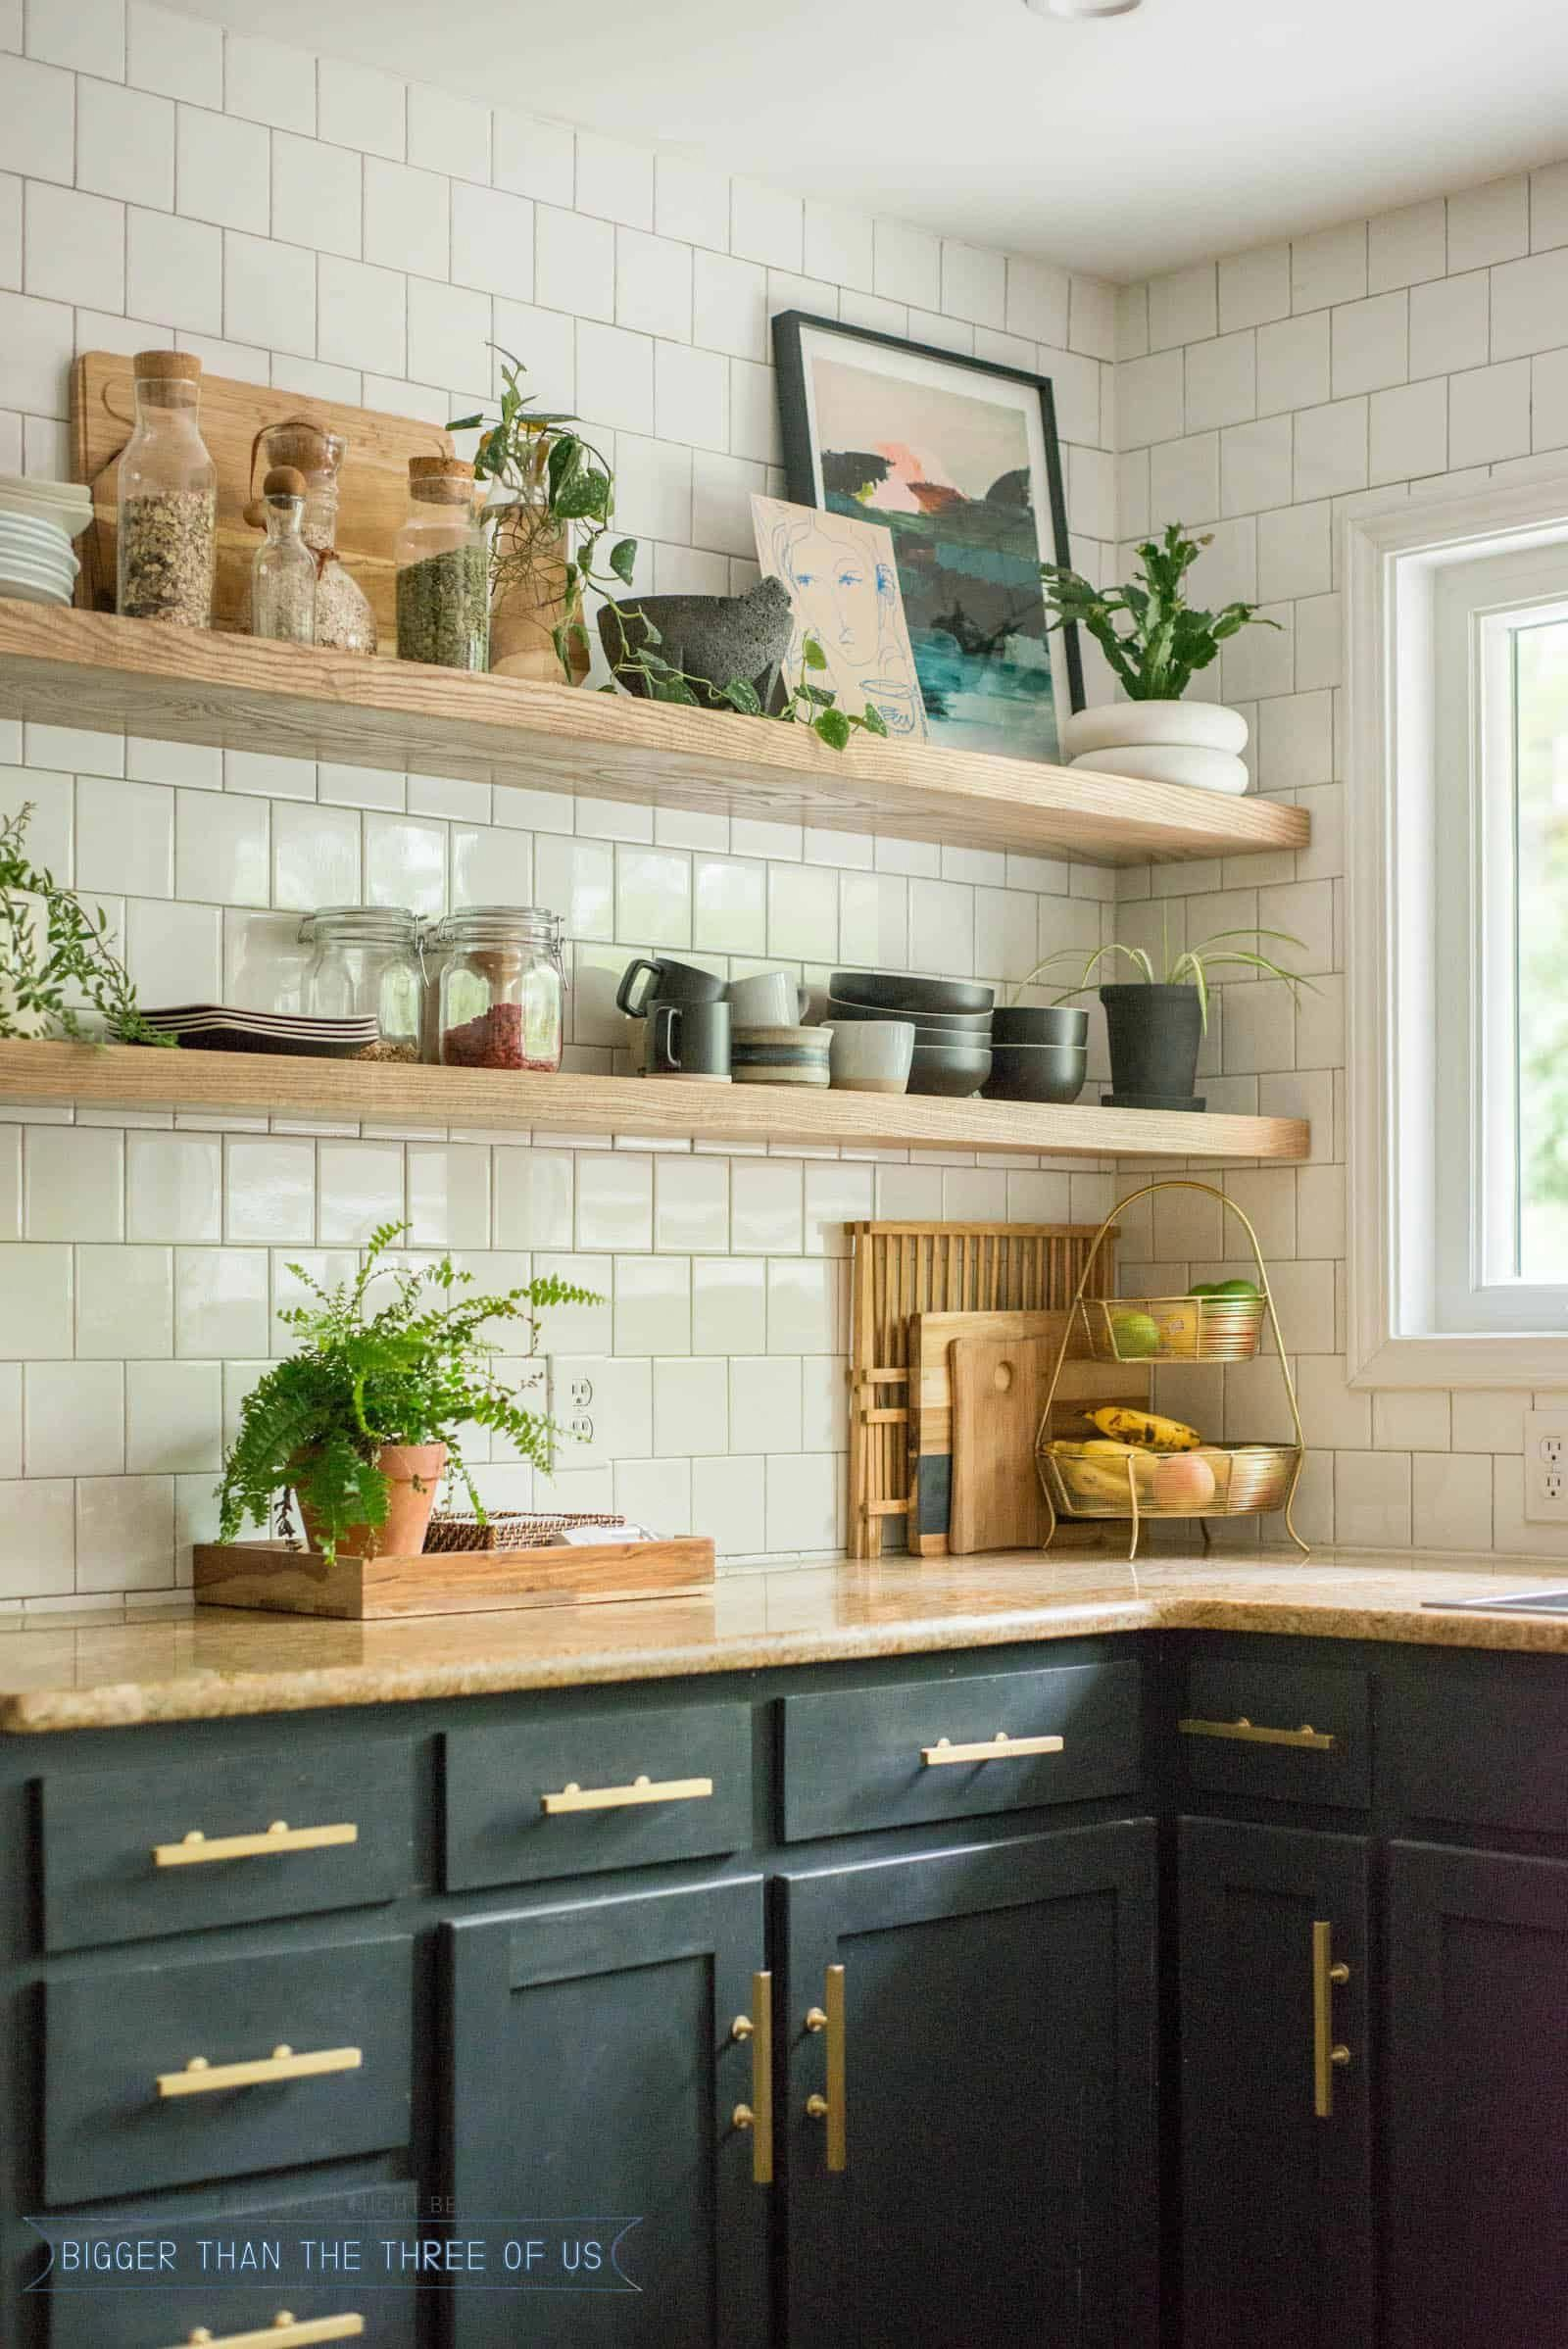 Diy Open Shelving Kitchen How To Mount A Floating Shelf How To Hang Heavy Shelves On Dr Open Kitchen Cabinets Open Kitchen Shelves Floating Shelves Kitchen